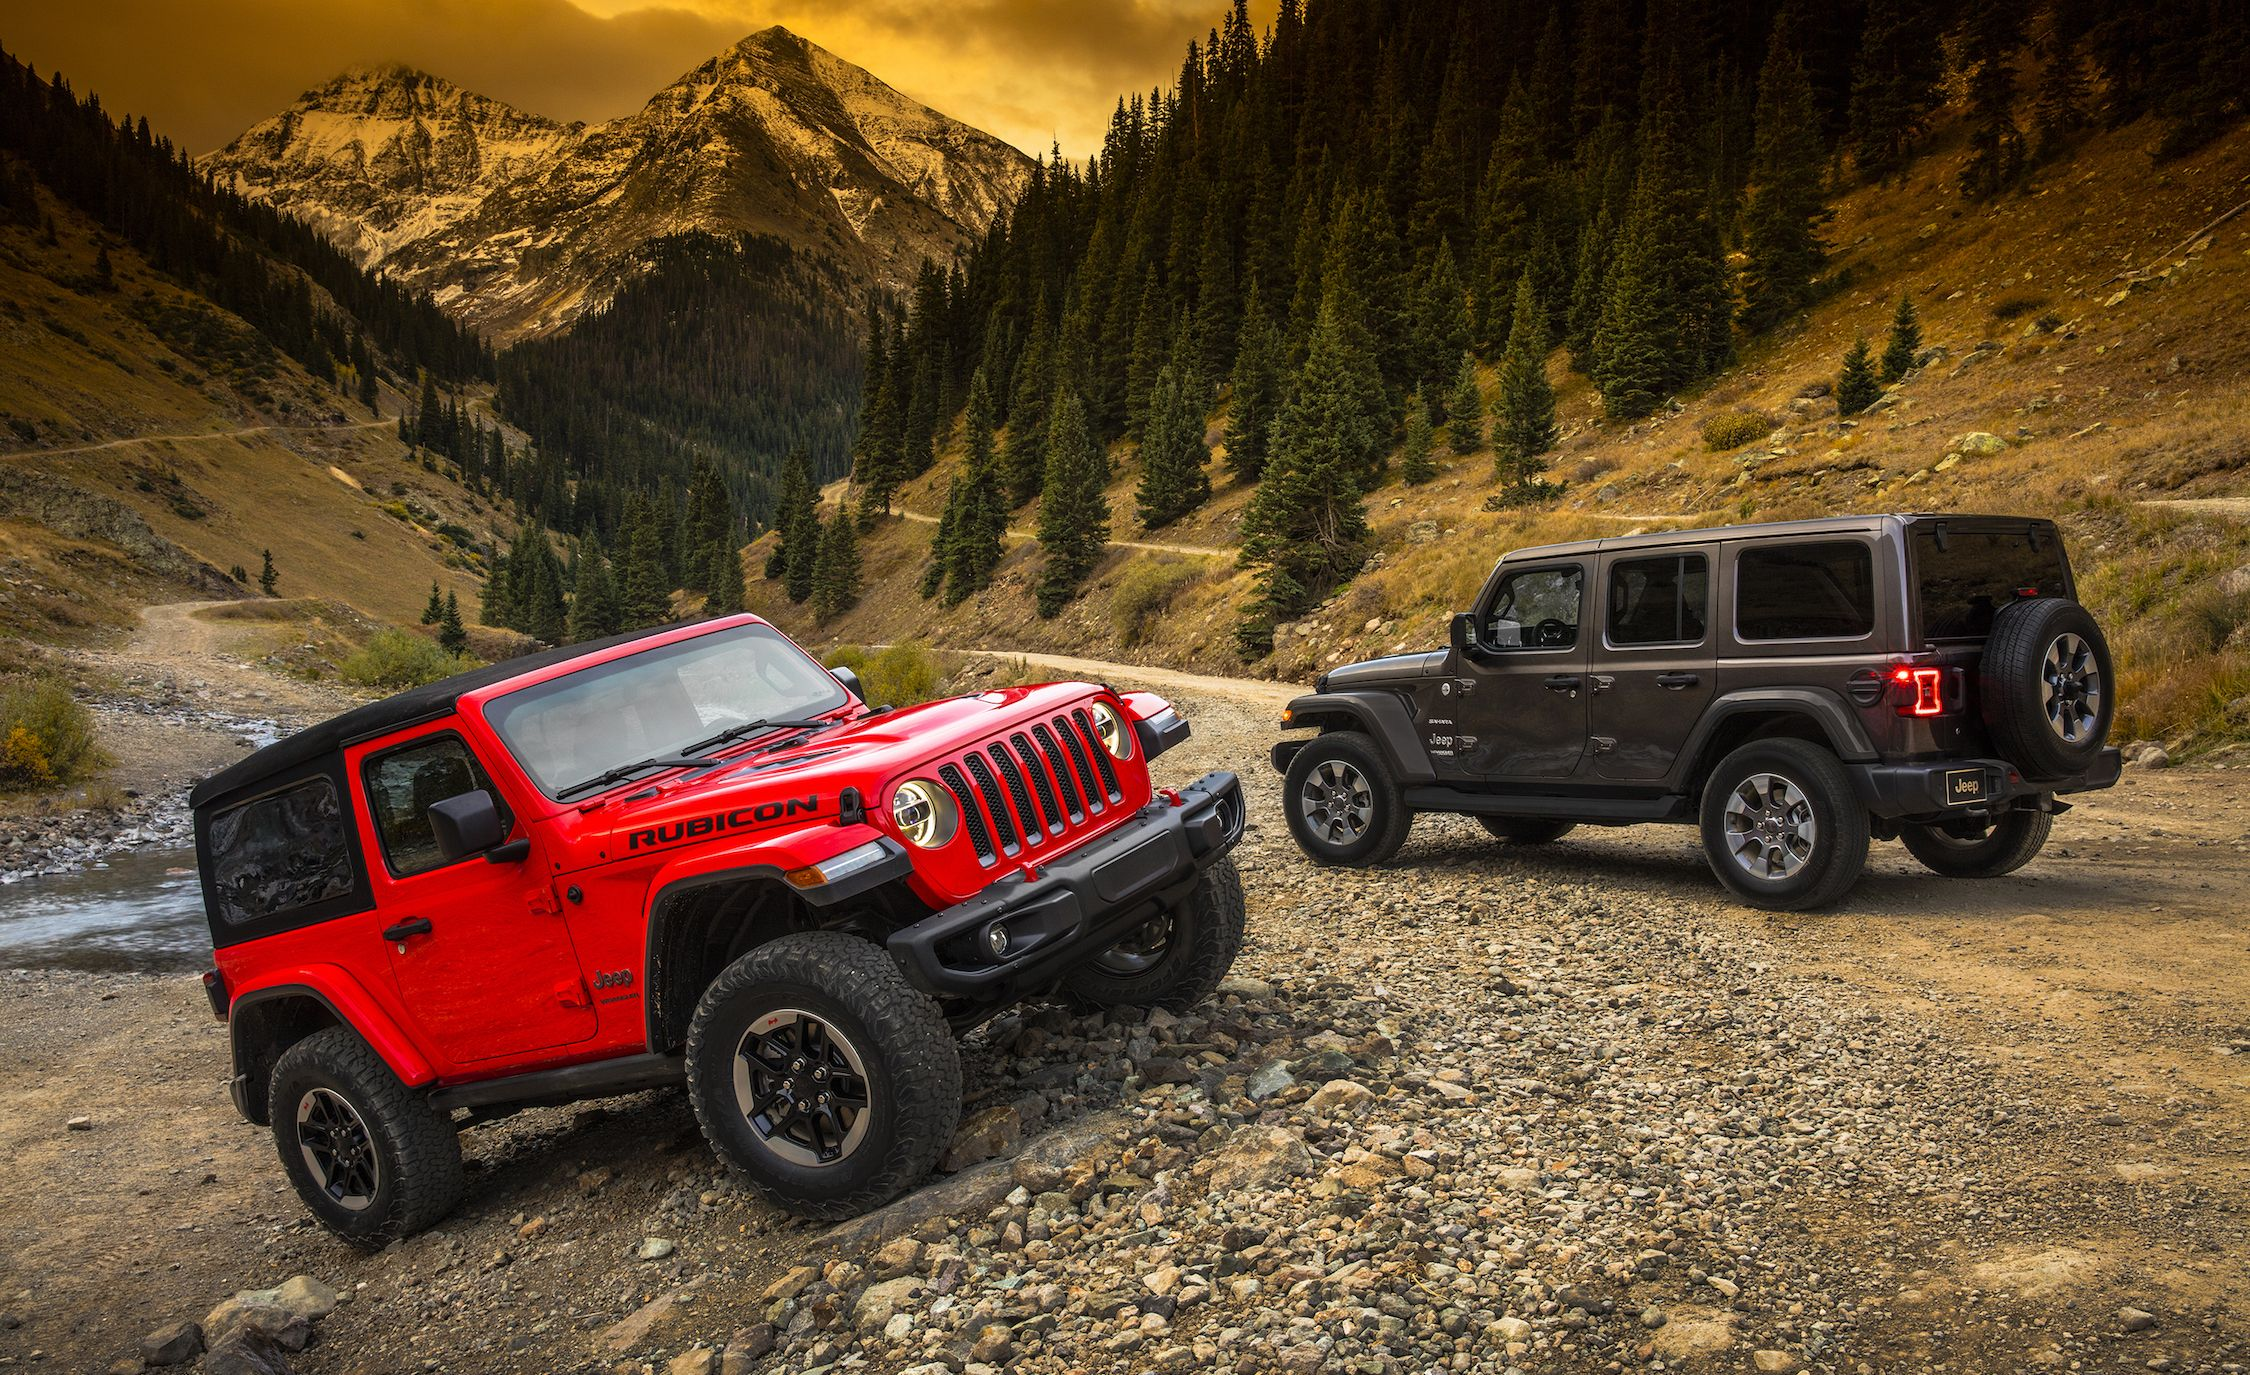 The Complete Visual History Of Jeep Wrangler From 1986 To Present Front Suspension Diagram